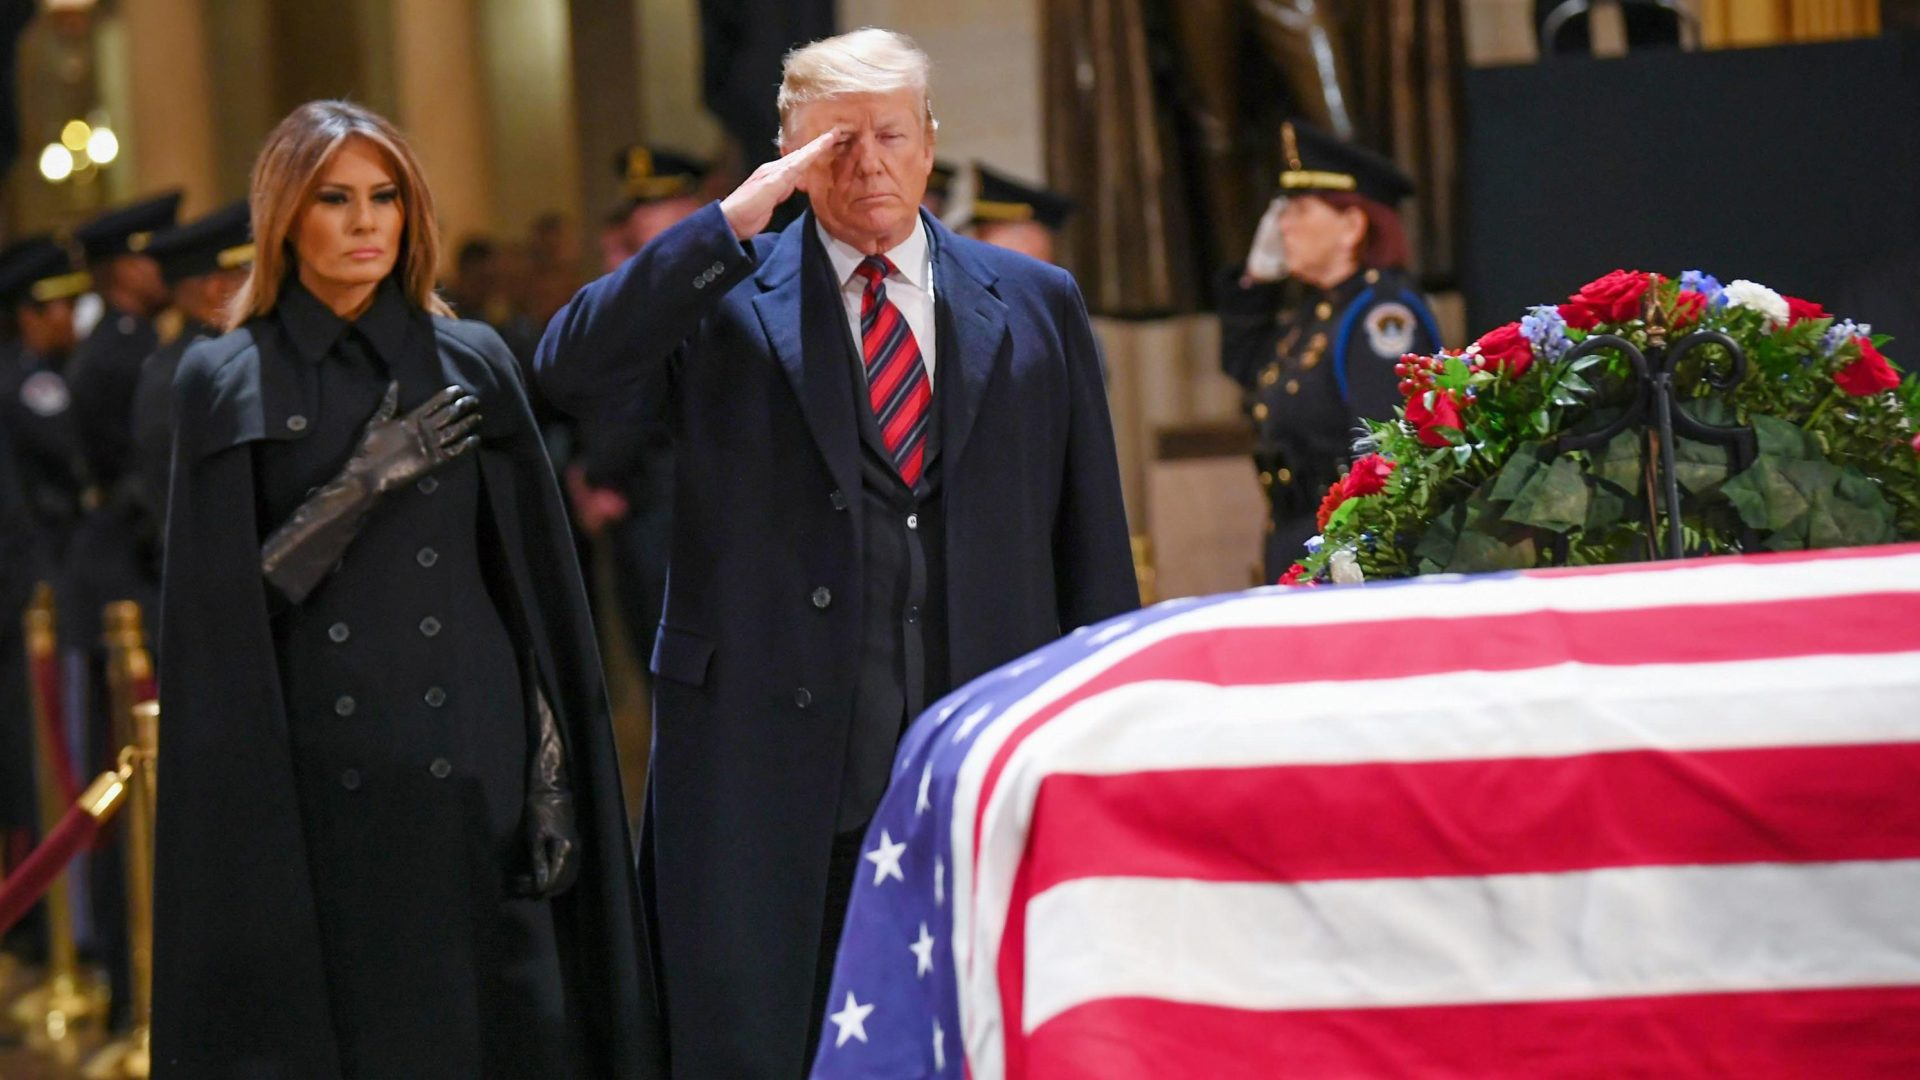 Former President George H.W. Bush was hailed at his state funeral on Wednesday as a warrior-statesman of uncommon personal kindness.